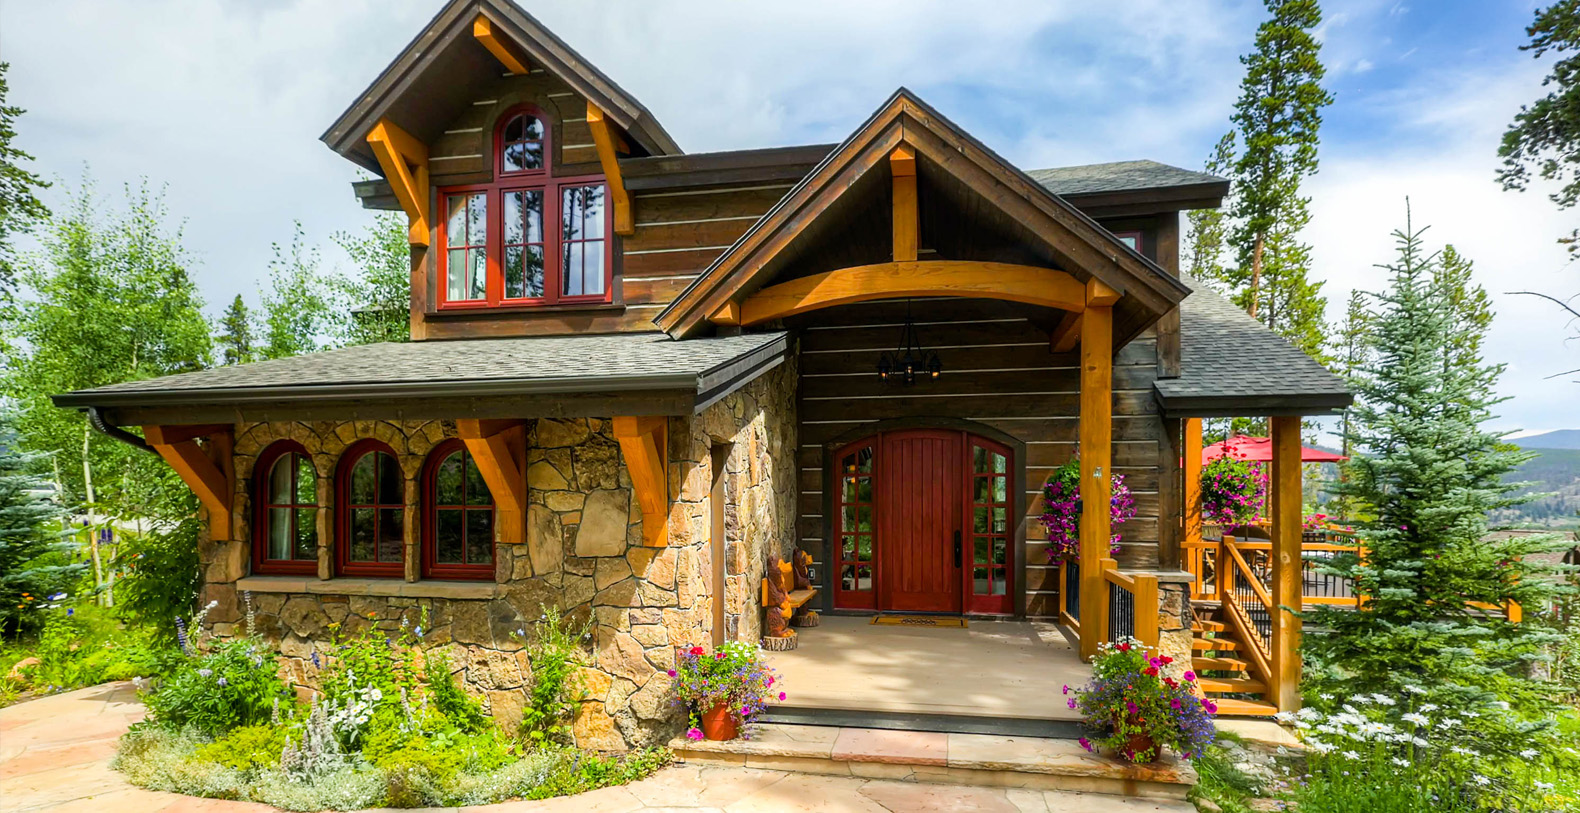 Vail cabin rentals inspirational for Cabins for rent near vail colorado